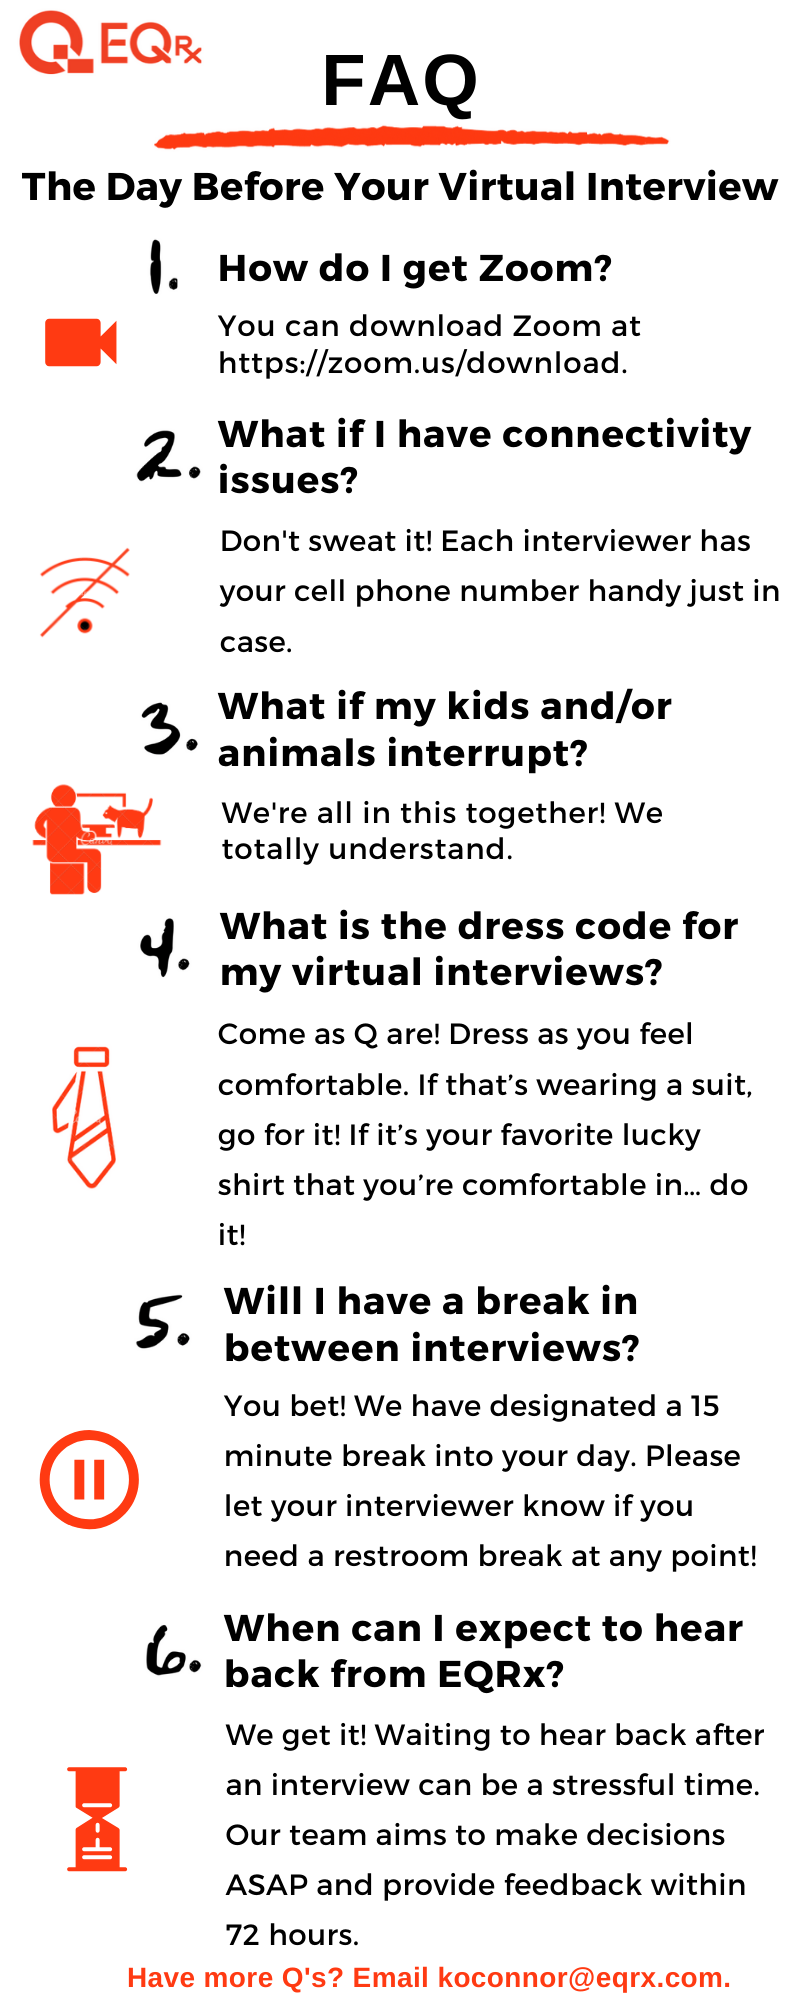 """List of Frequently Asked Questions for """"The Day Before Your Virtual Interview"""" at EQRx."""